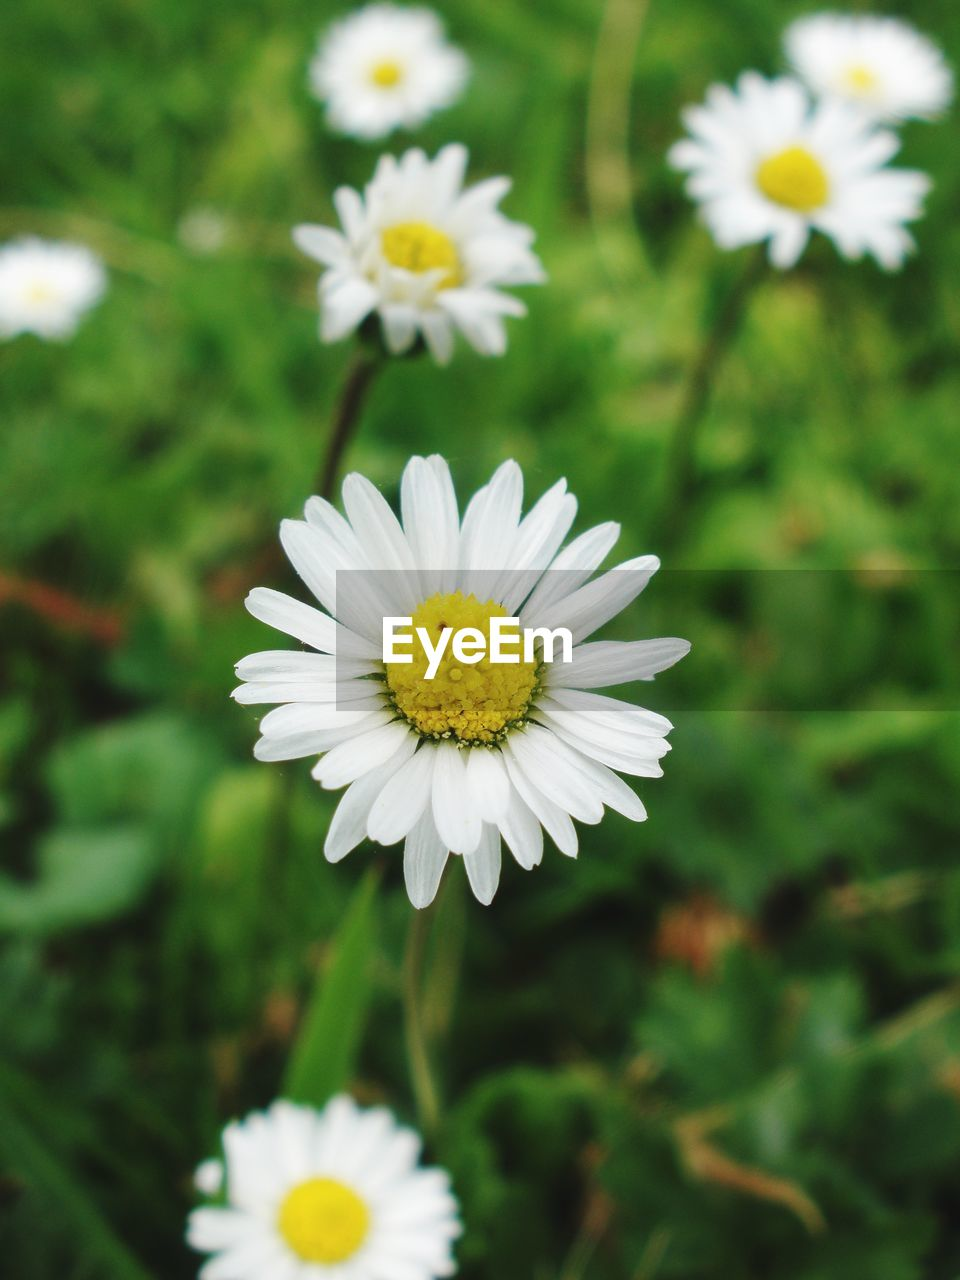 flowering plant, flower, freshness, plant, beauty in nature, petal, white color, vulnerability, fragility, growth, flower head, inflorescence, daisy, close-up, yellow, nature, focus on foreground, day, pollen, no people